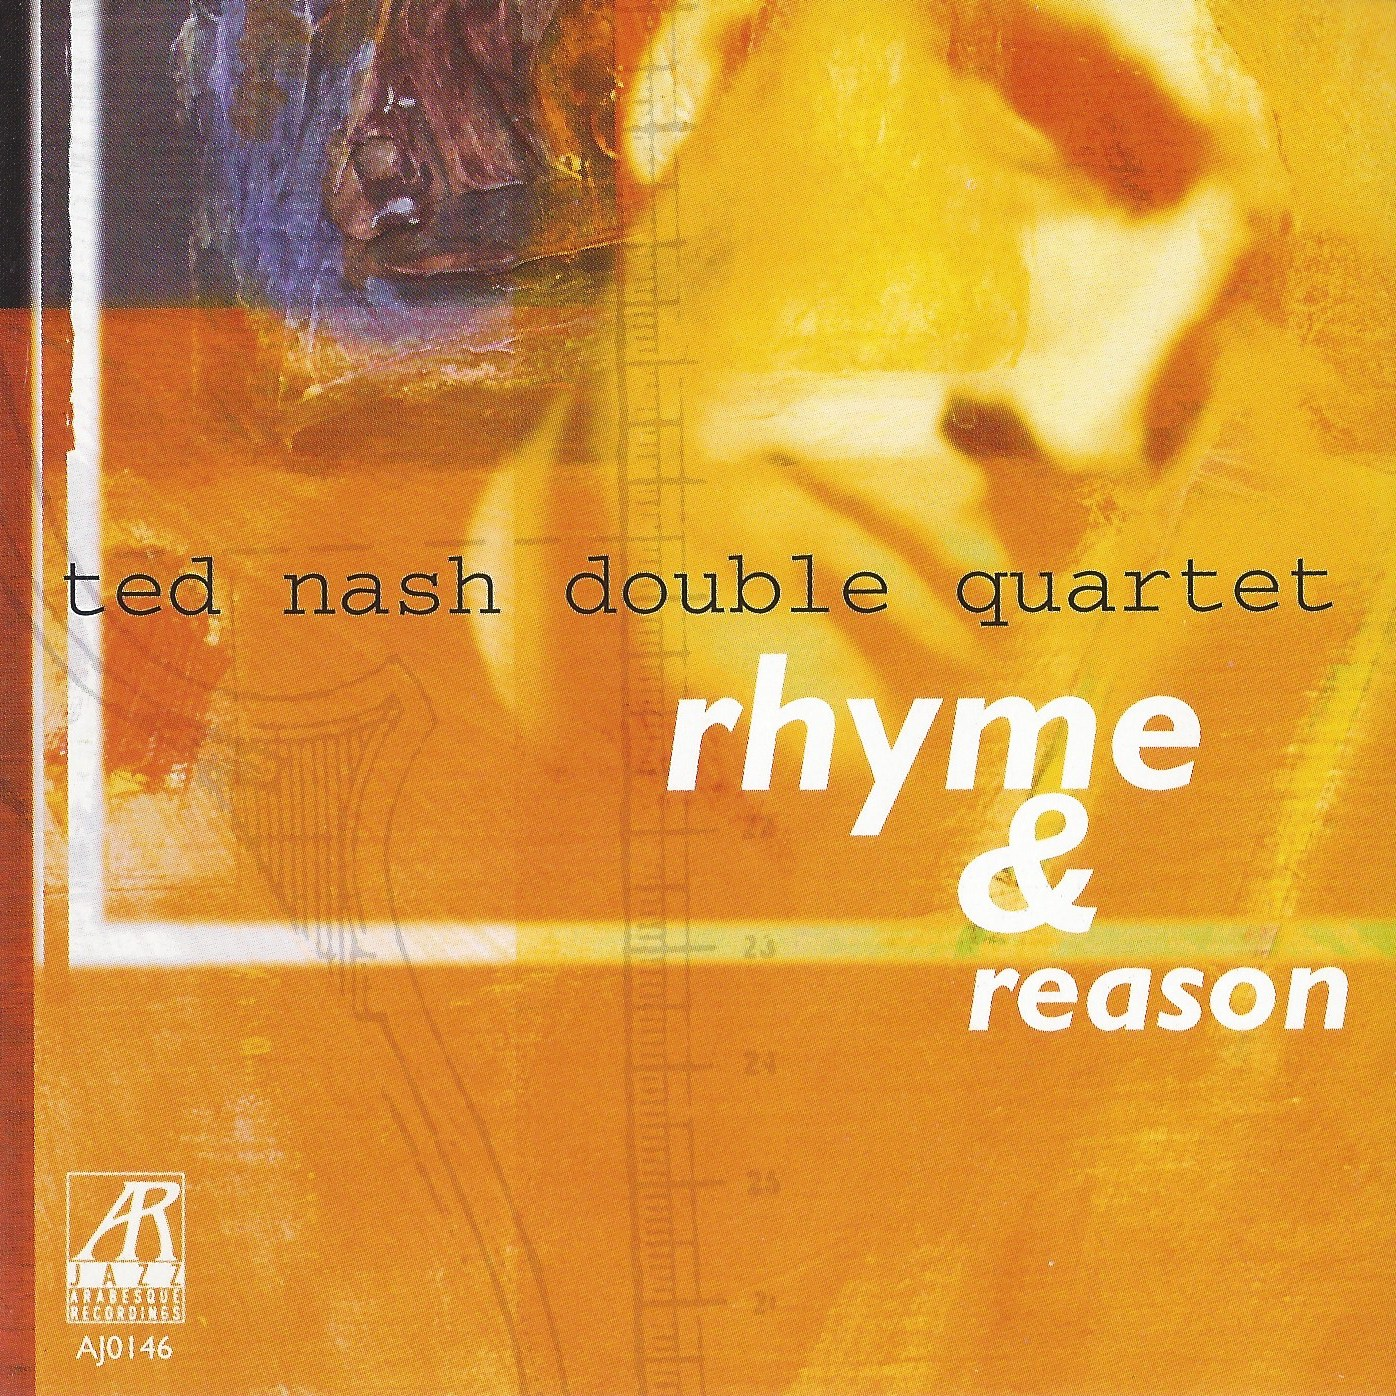 AJ0146  | Rhyme & Reason |  Ted Nash